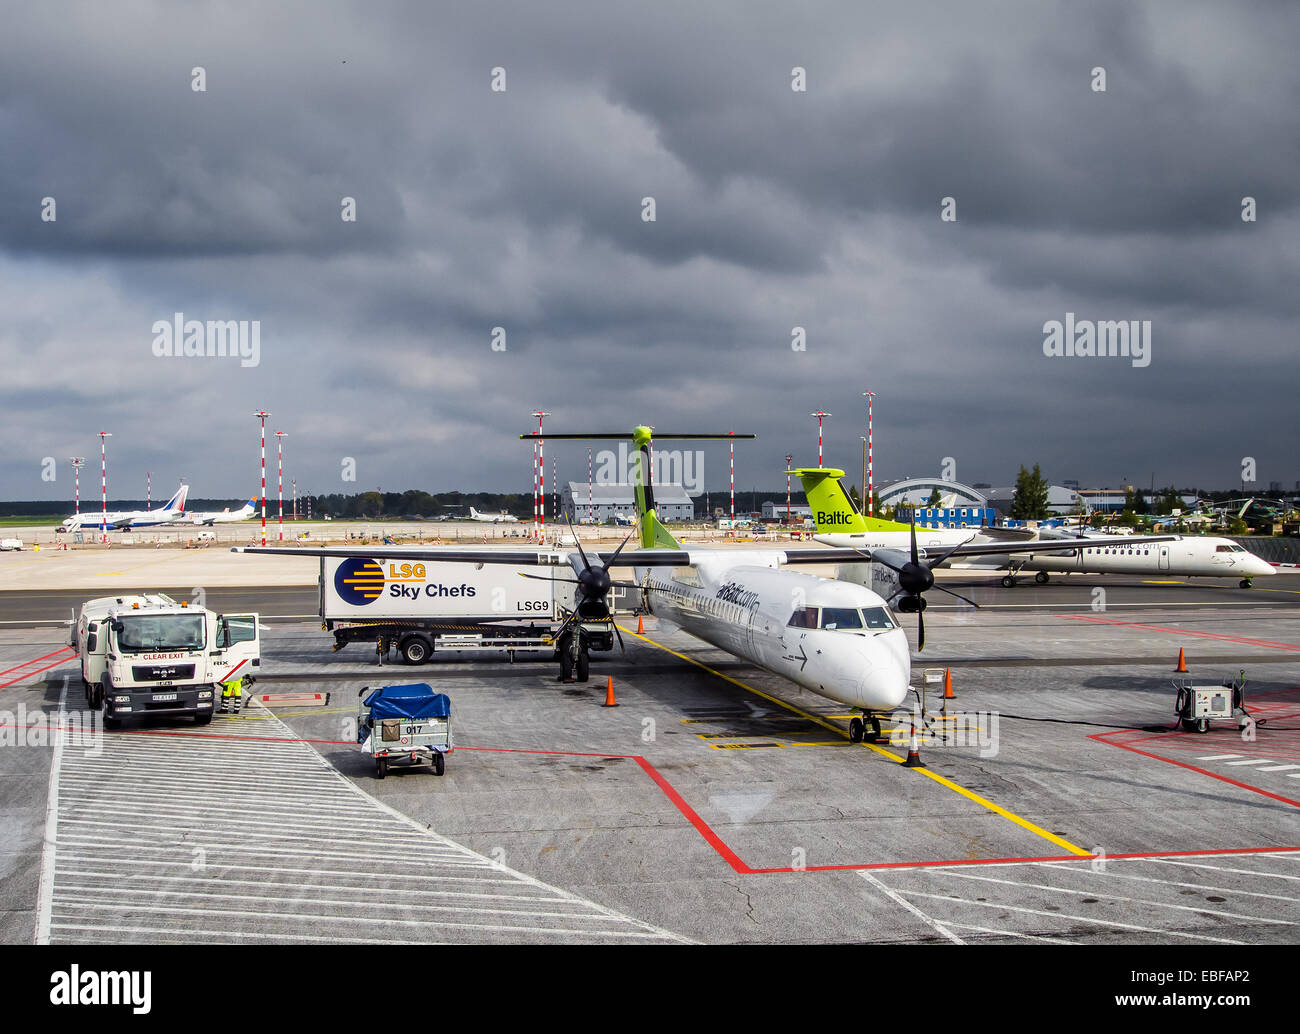 Preflight service of the plane of airline Airbaltic - Stock Image